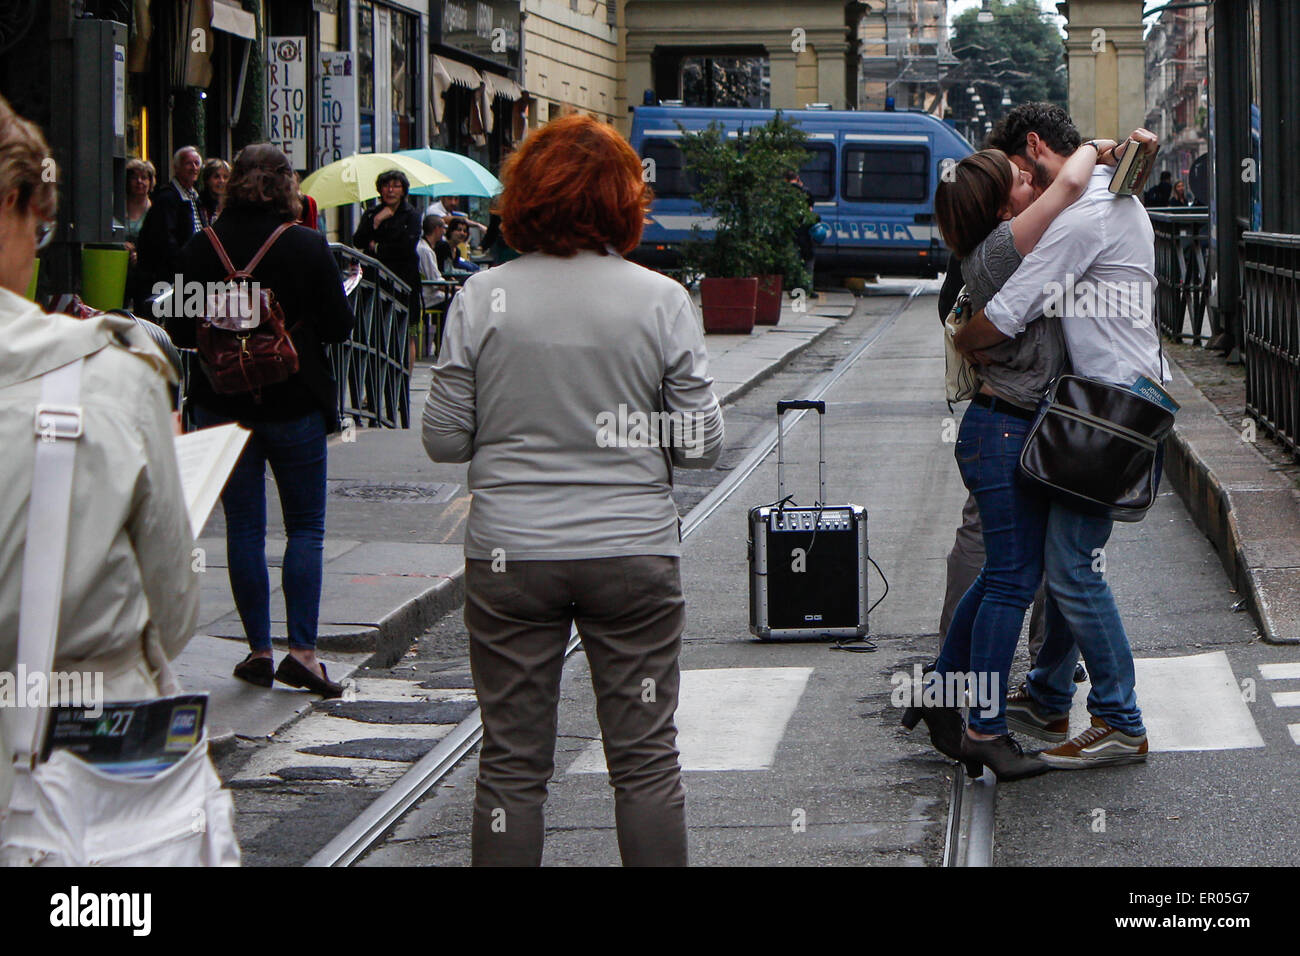 Turin, Italy. 23rd May, 2015. A heterosexual couple kissing proving that love is the same for everyone and it is - Stock Image